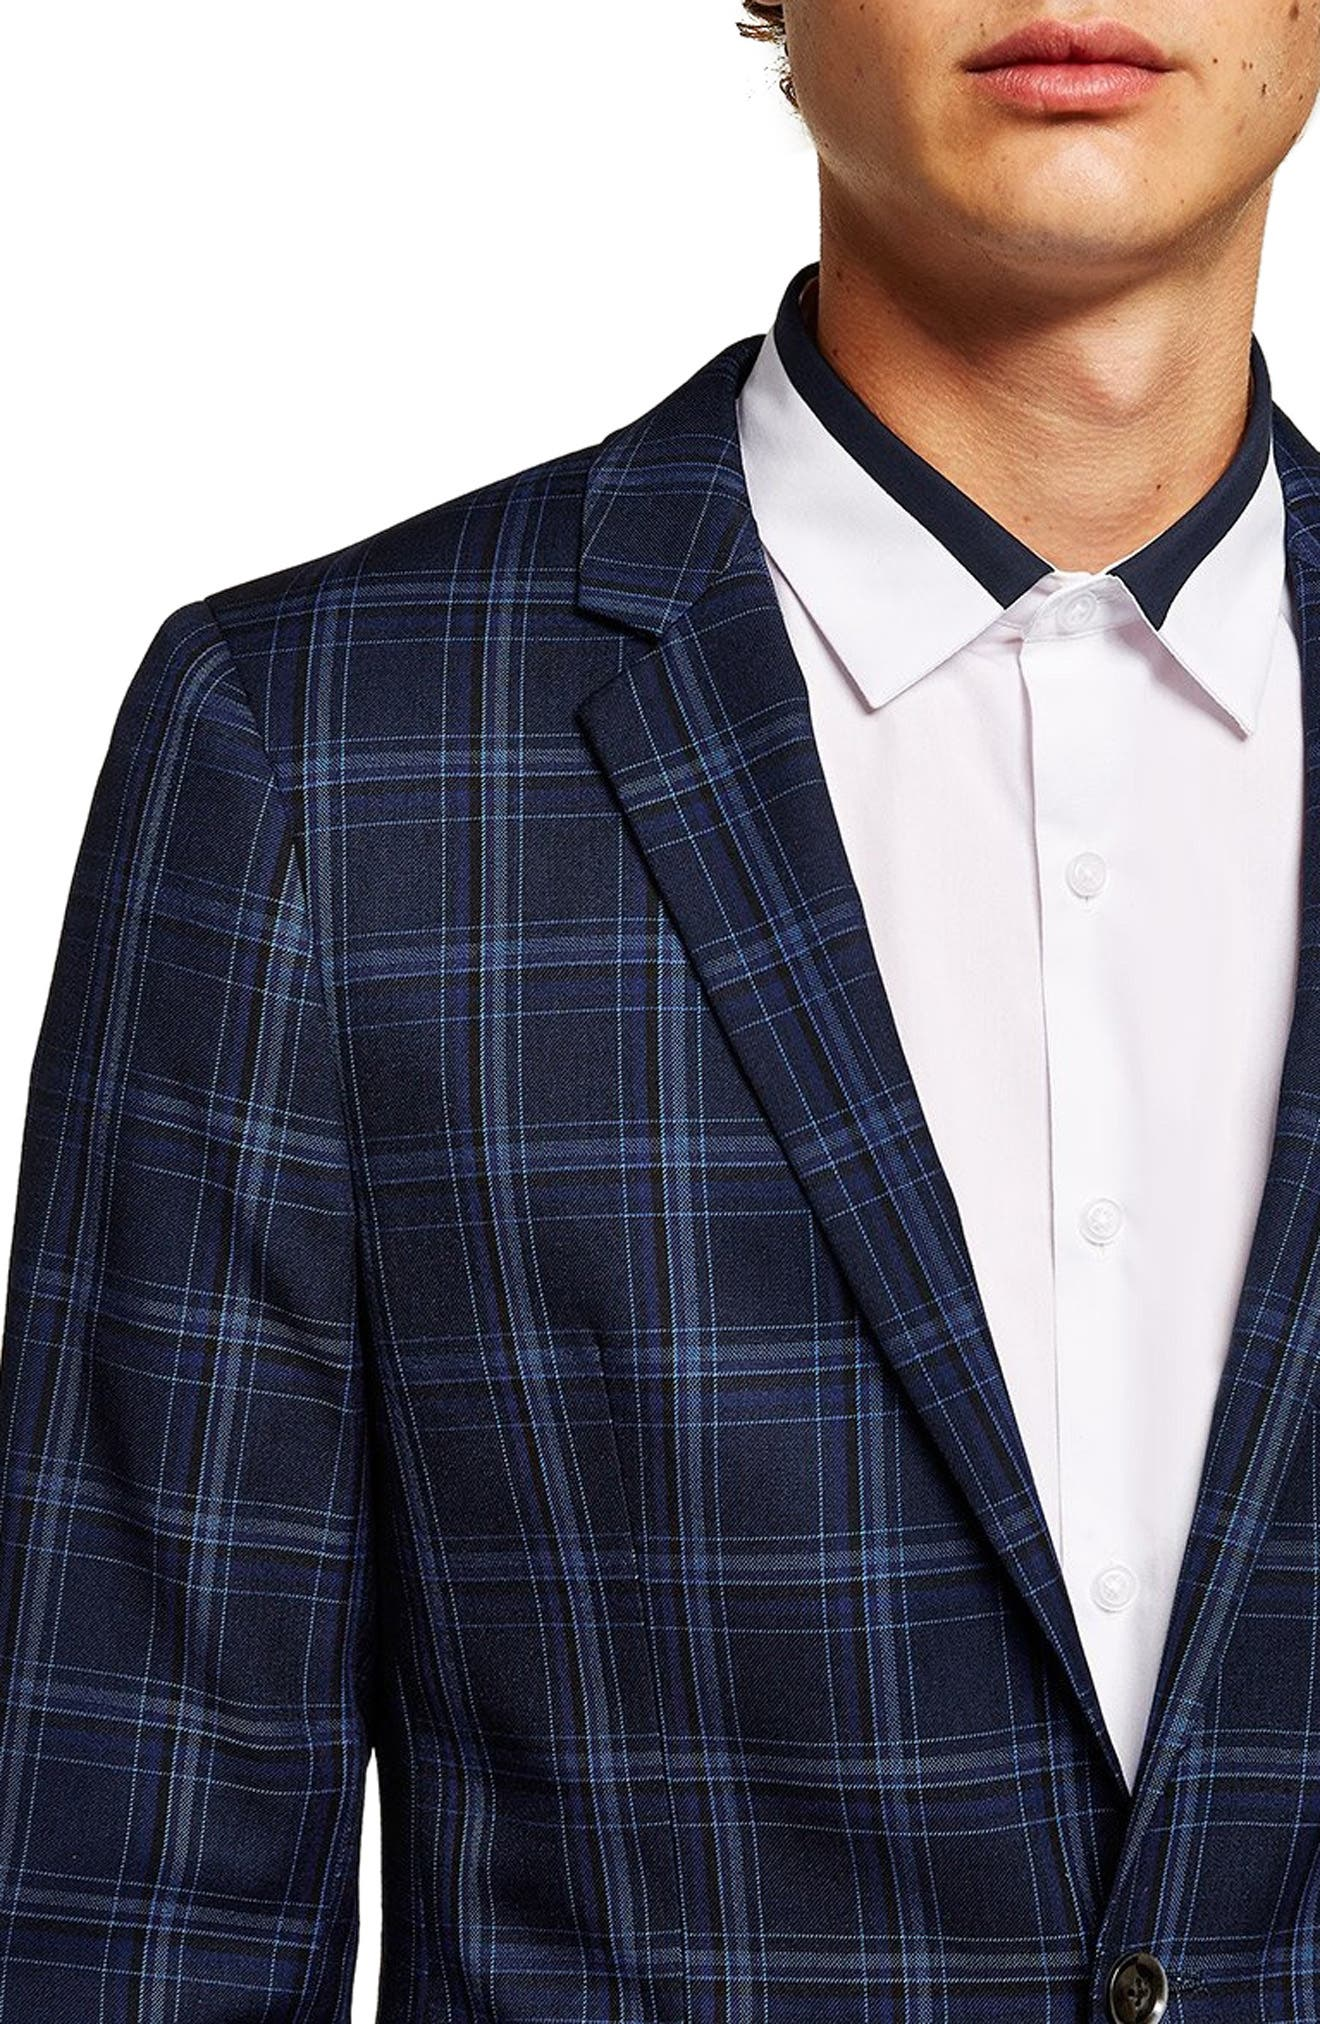 Skinny Fit Check Suit Jacket,                             Alternate thumbnail 3, color,                             BLUE